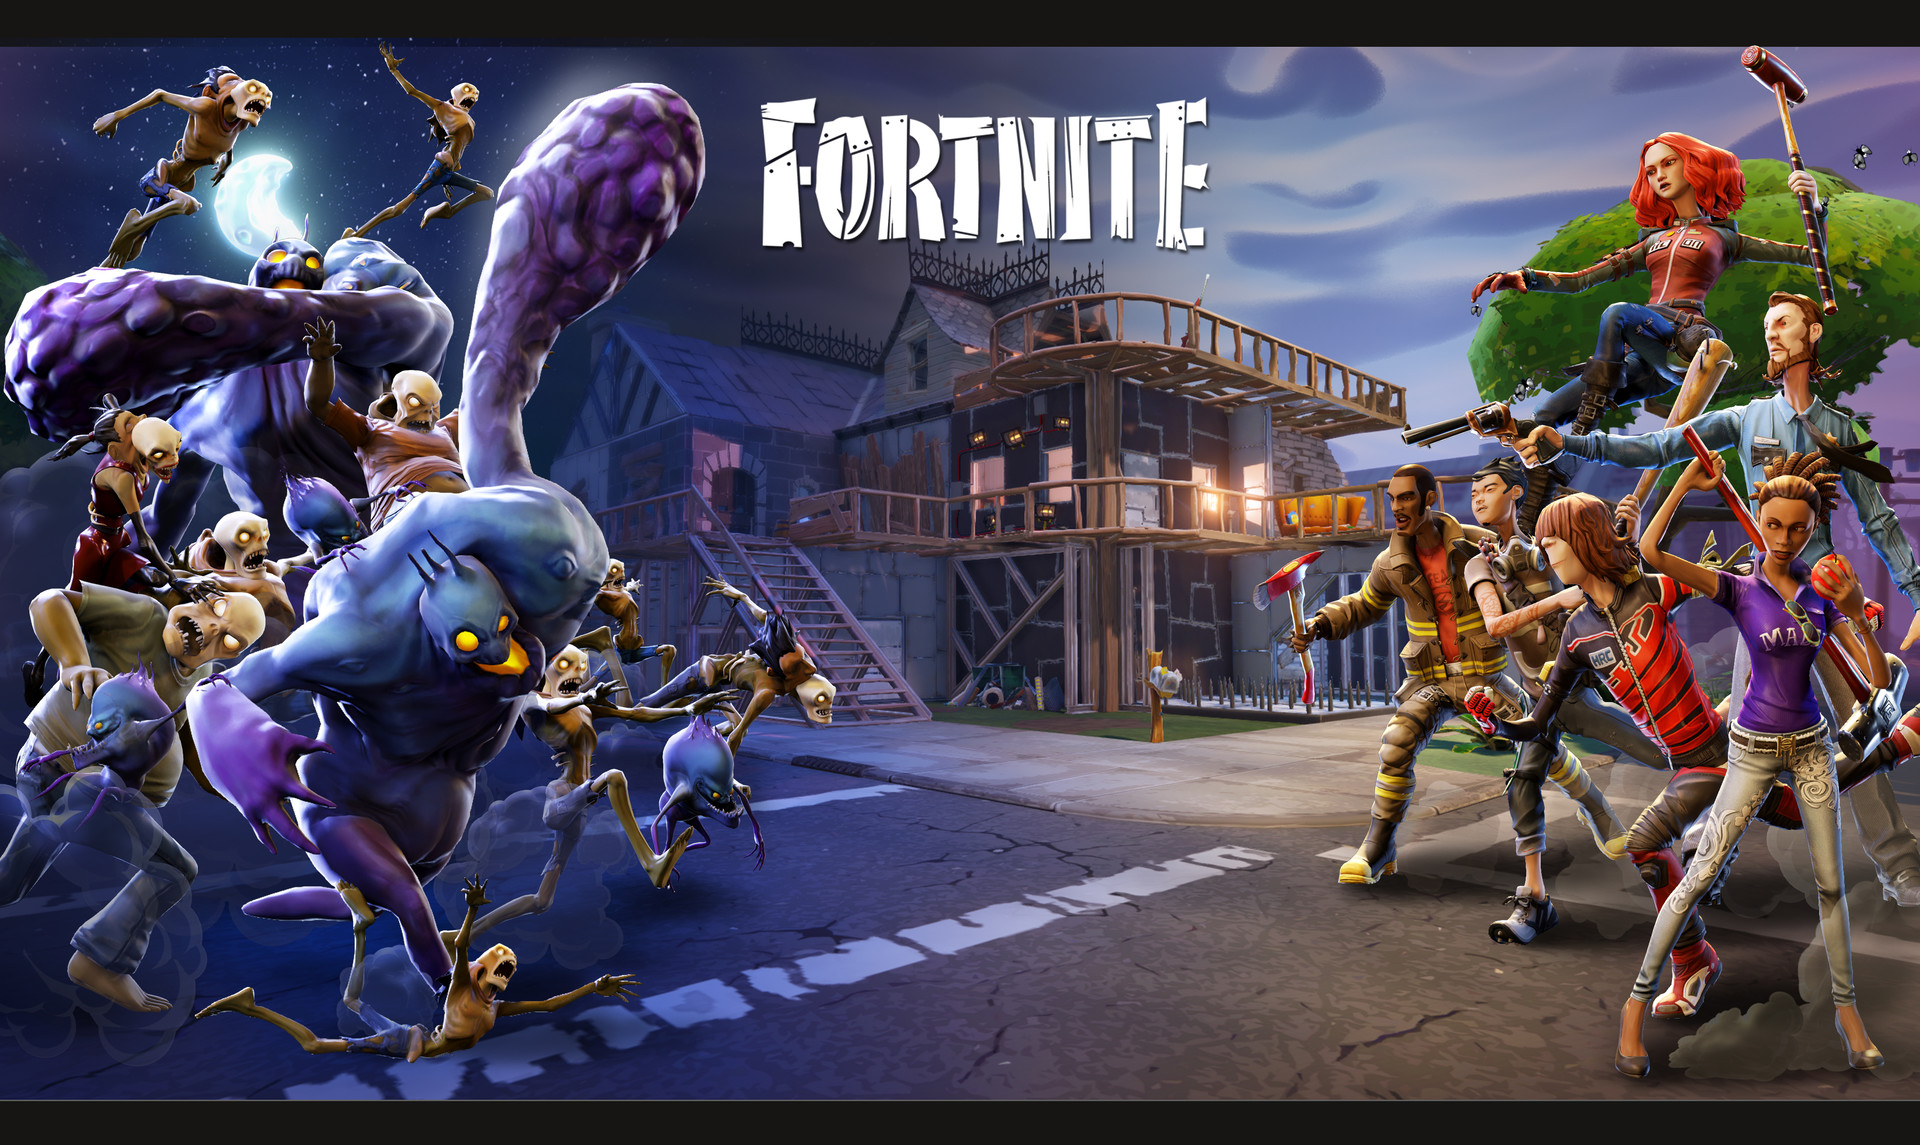 Fortnite Season 5 Game Characters 4190 Wallpapers and Stock 1920x1145